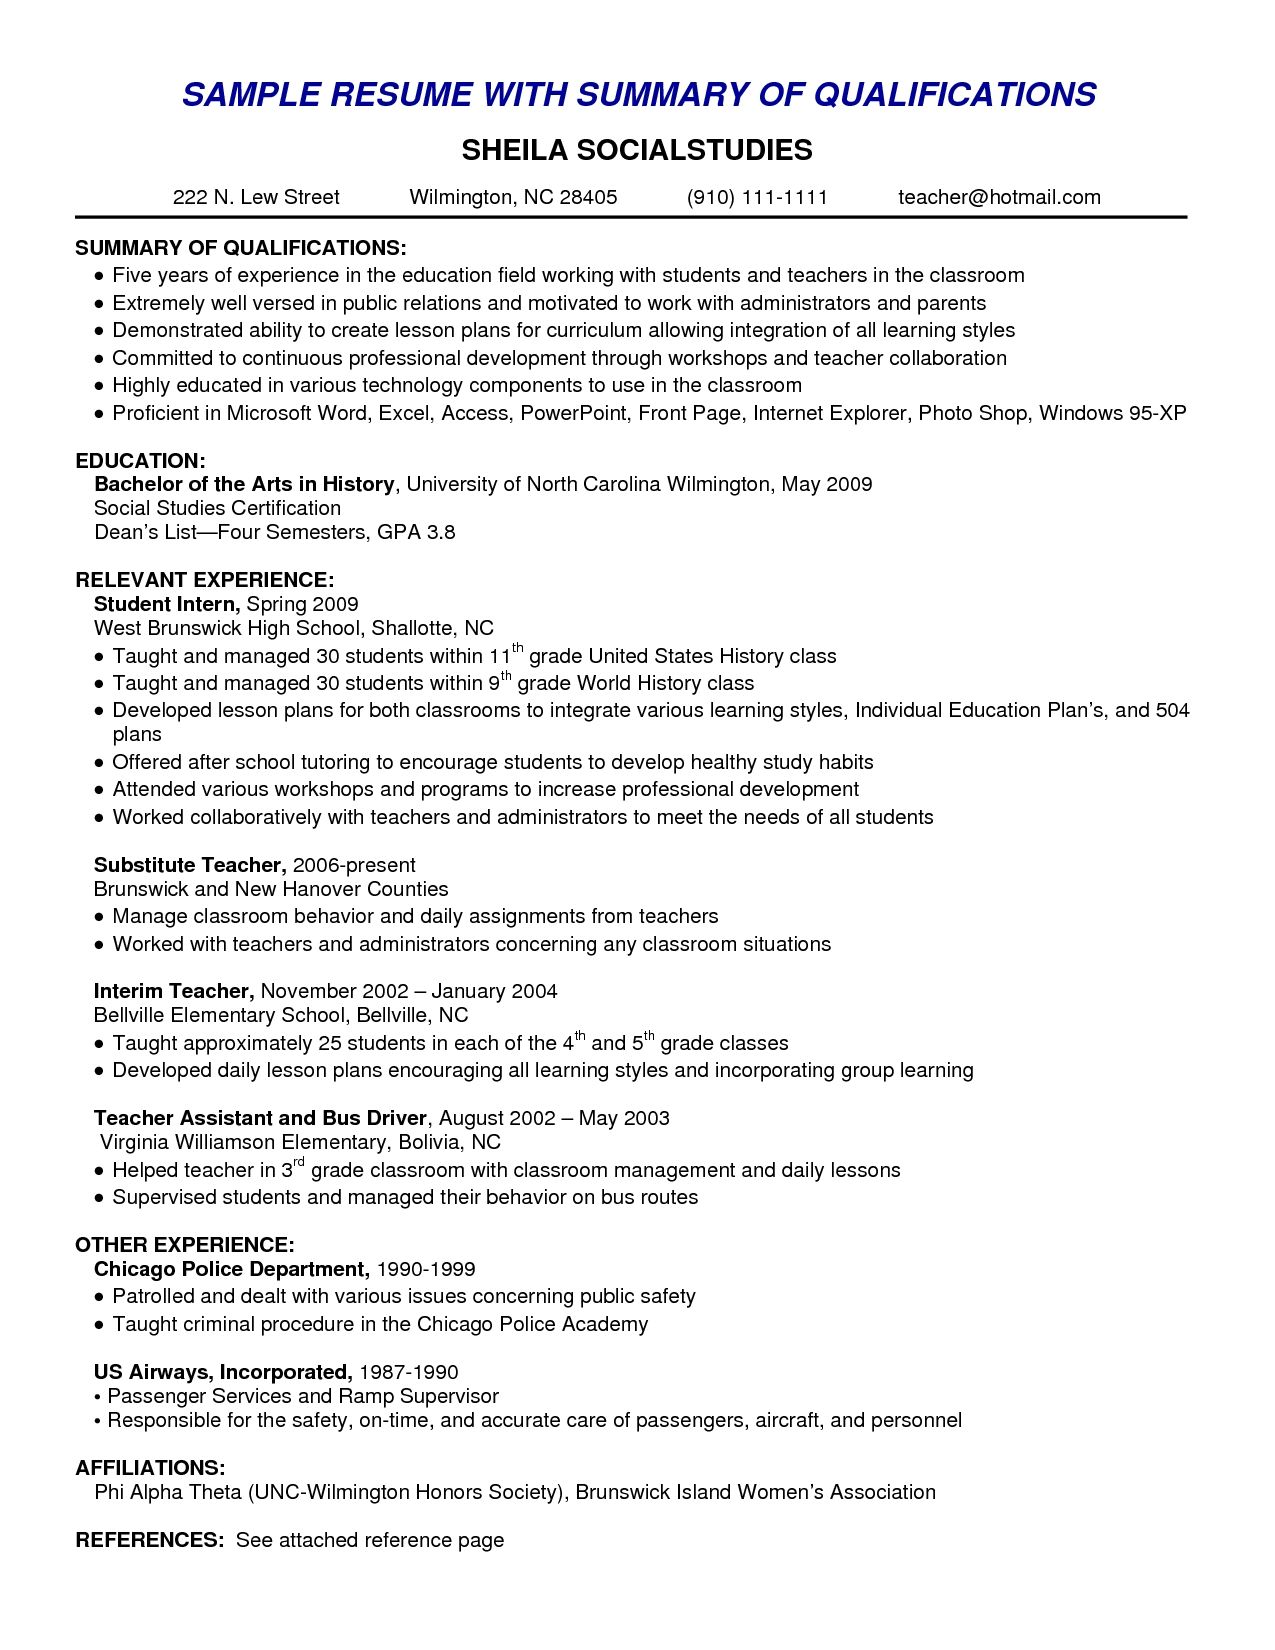 Resume Skills Summary Examples Example Of Skills Summary For Resume Amusing  Summary Of Skills  Skills Example For Resume